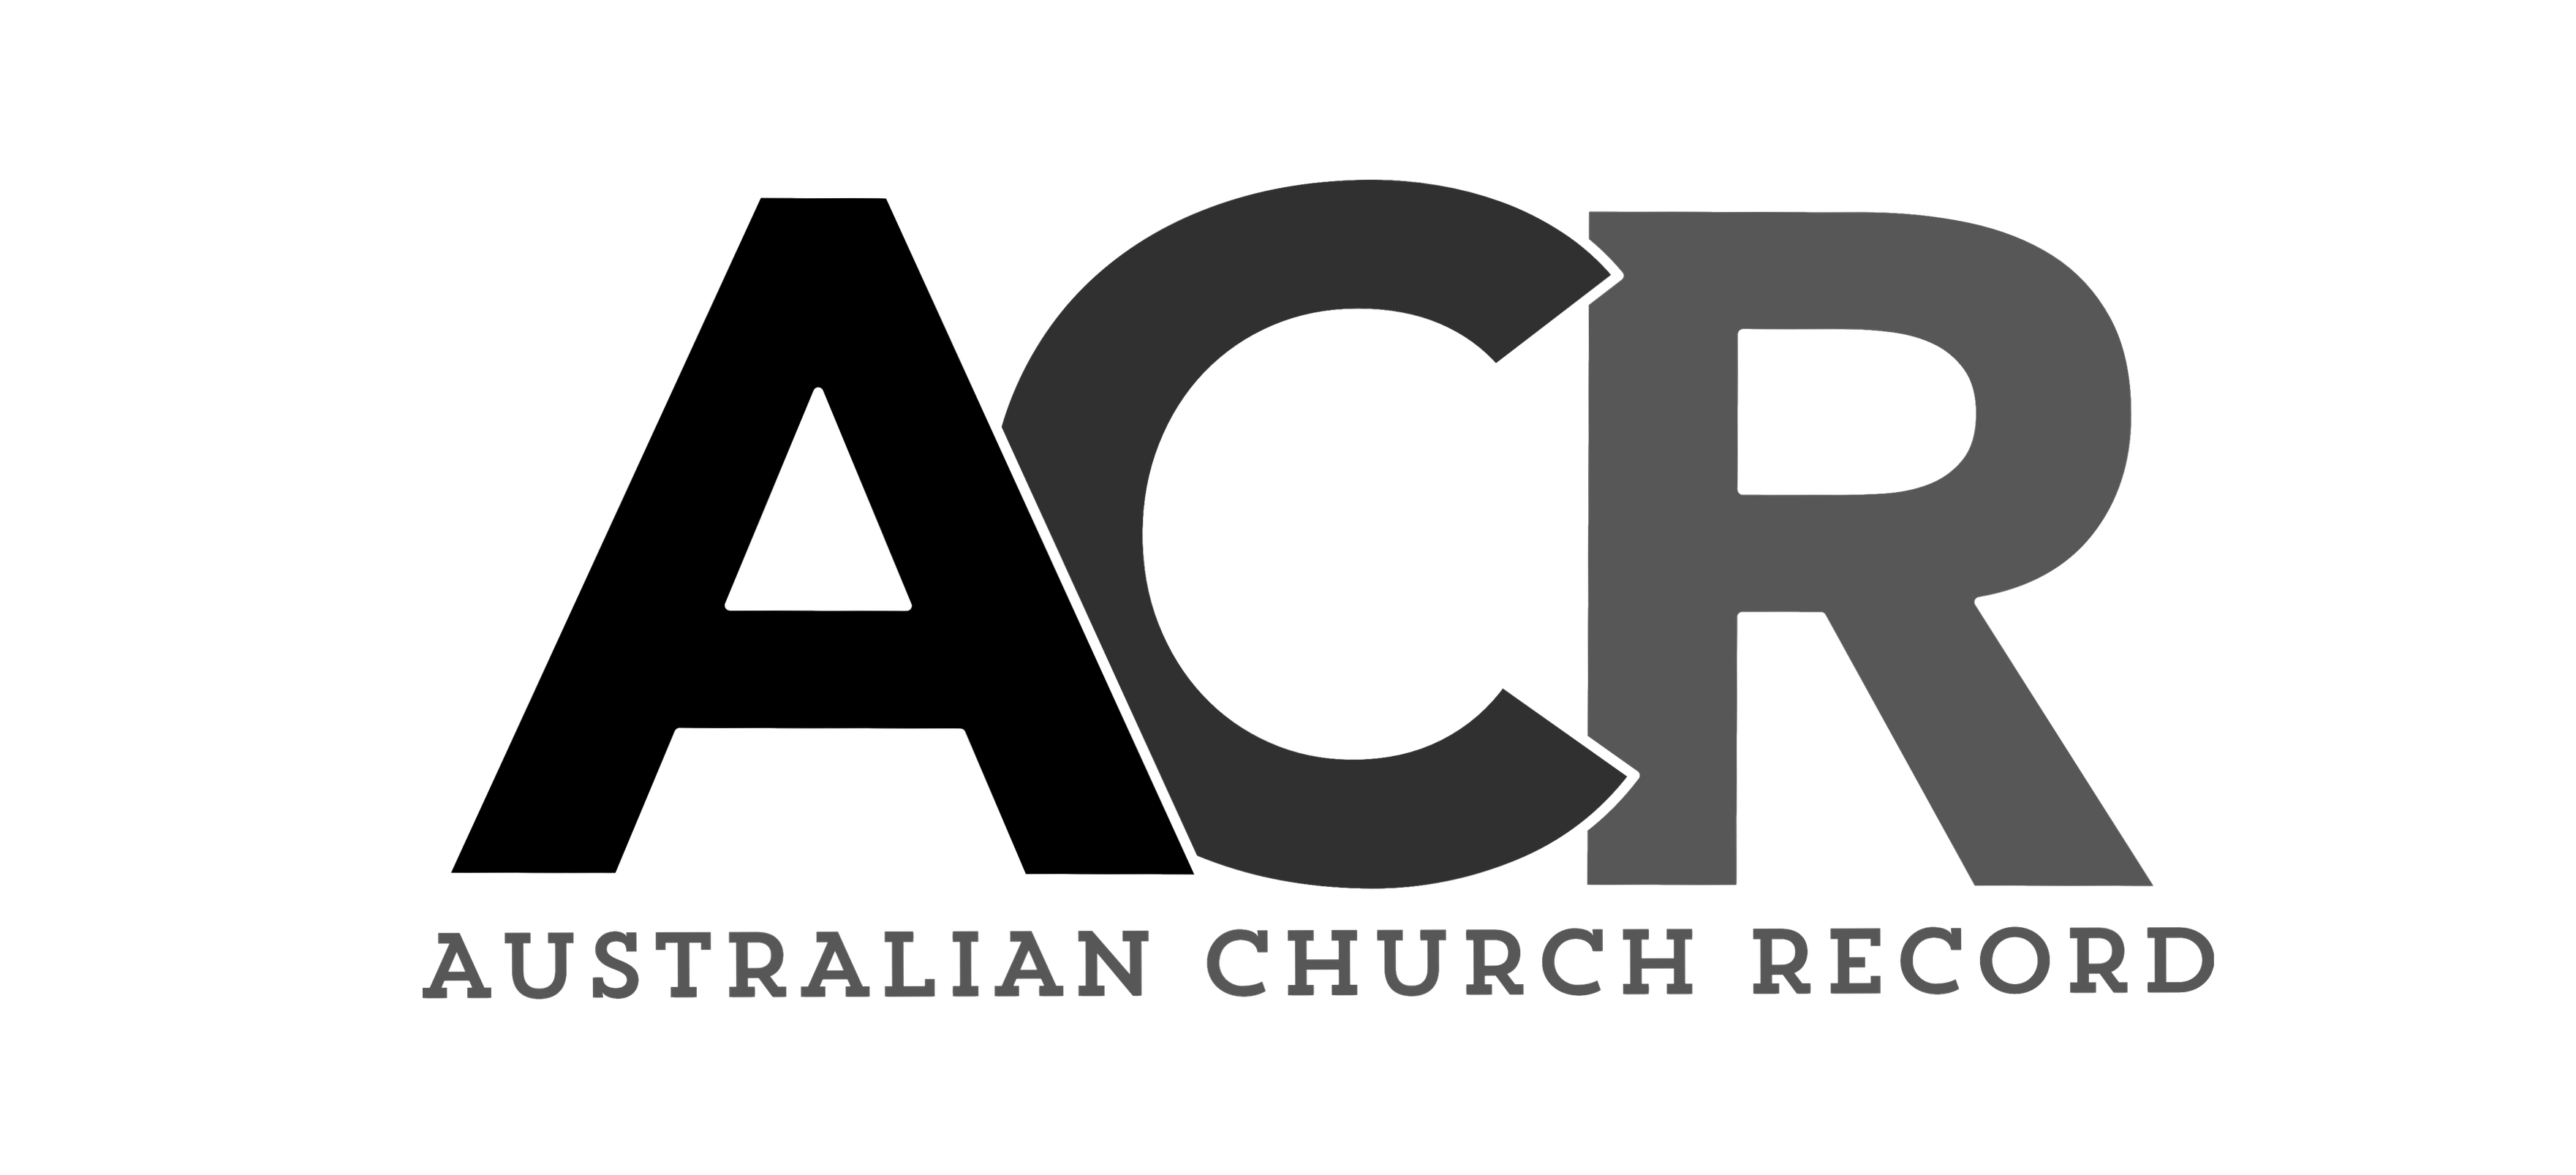 Australian Church Record